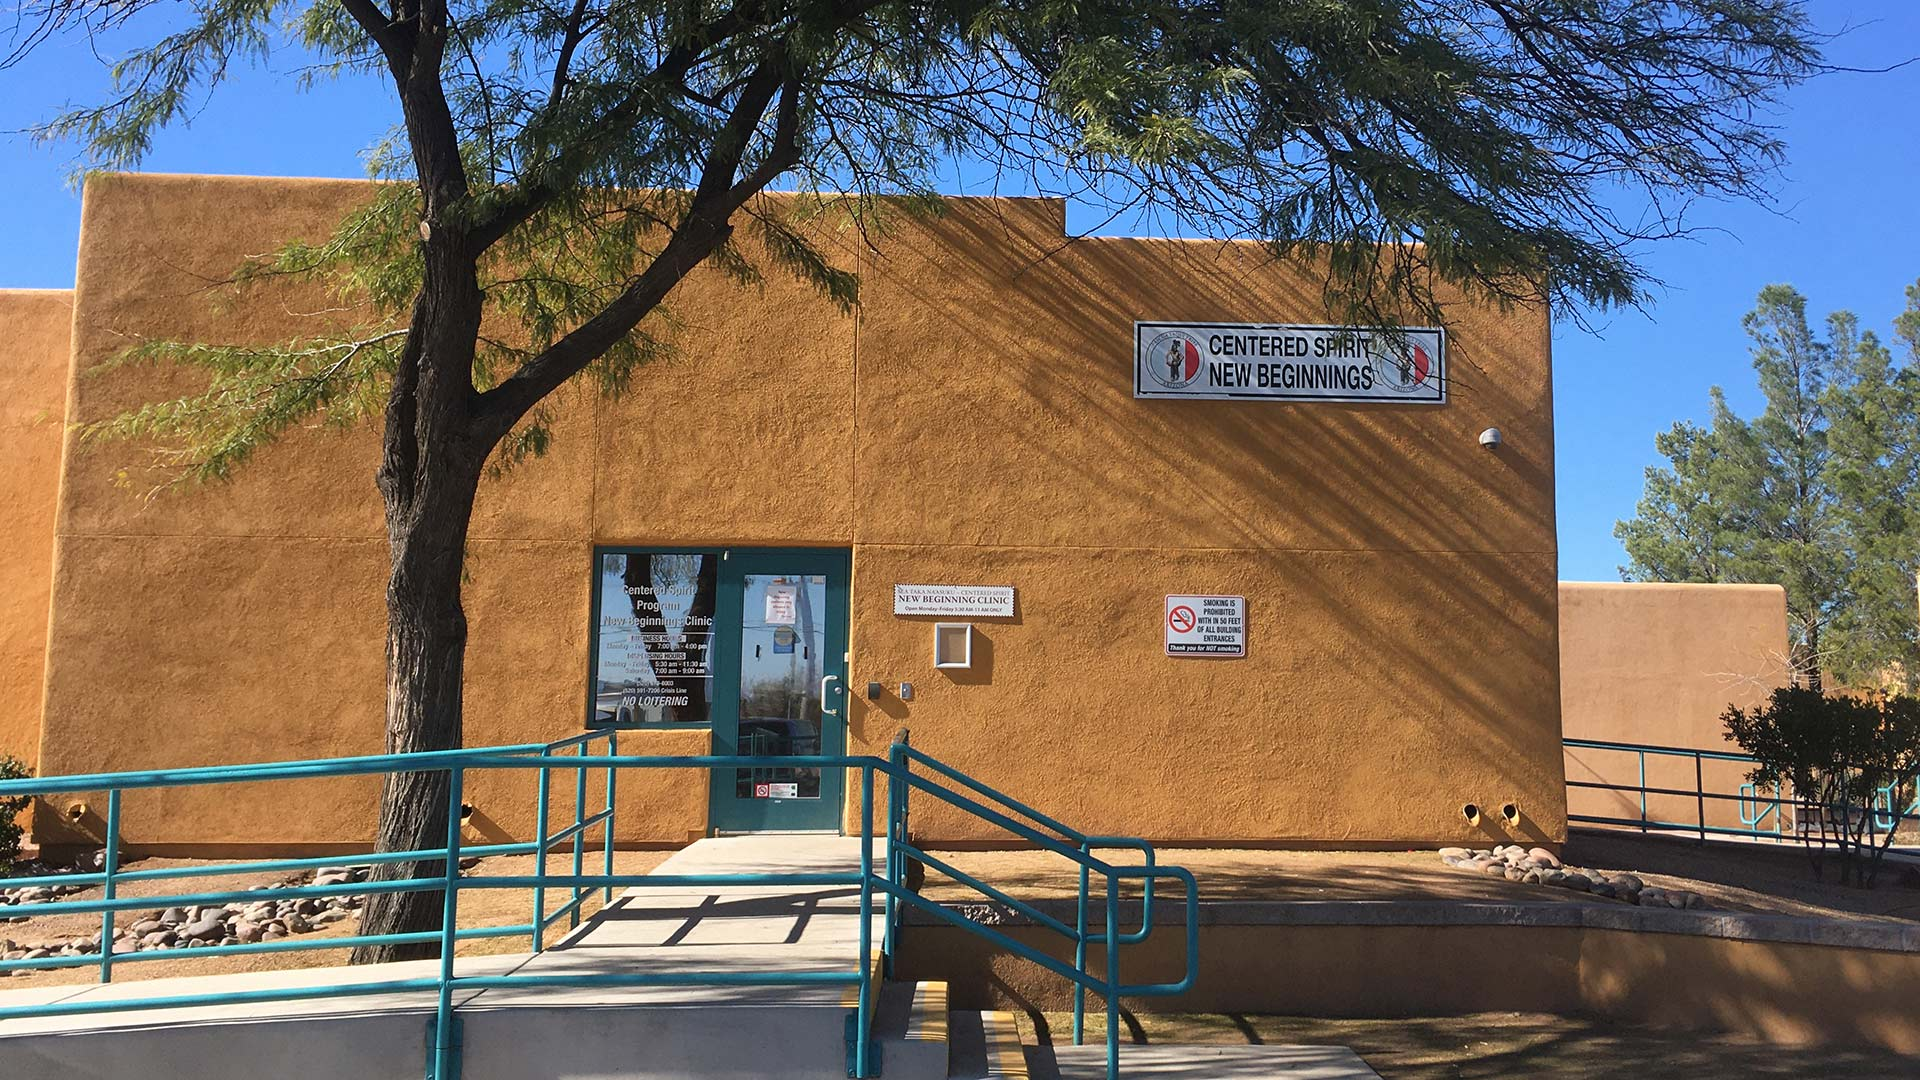 The New Beginnings Clinic on the Pascua Yaqui Tribe's reservation is the only medication-assisted treatment facility on tribal lands in Arizona as of February 2020.